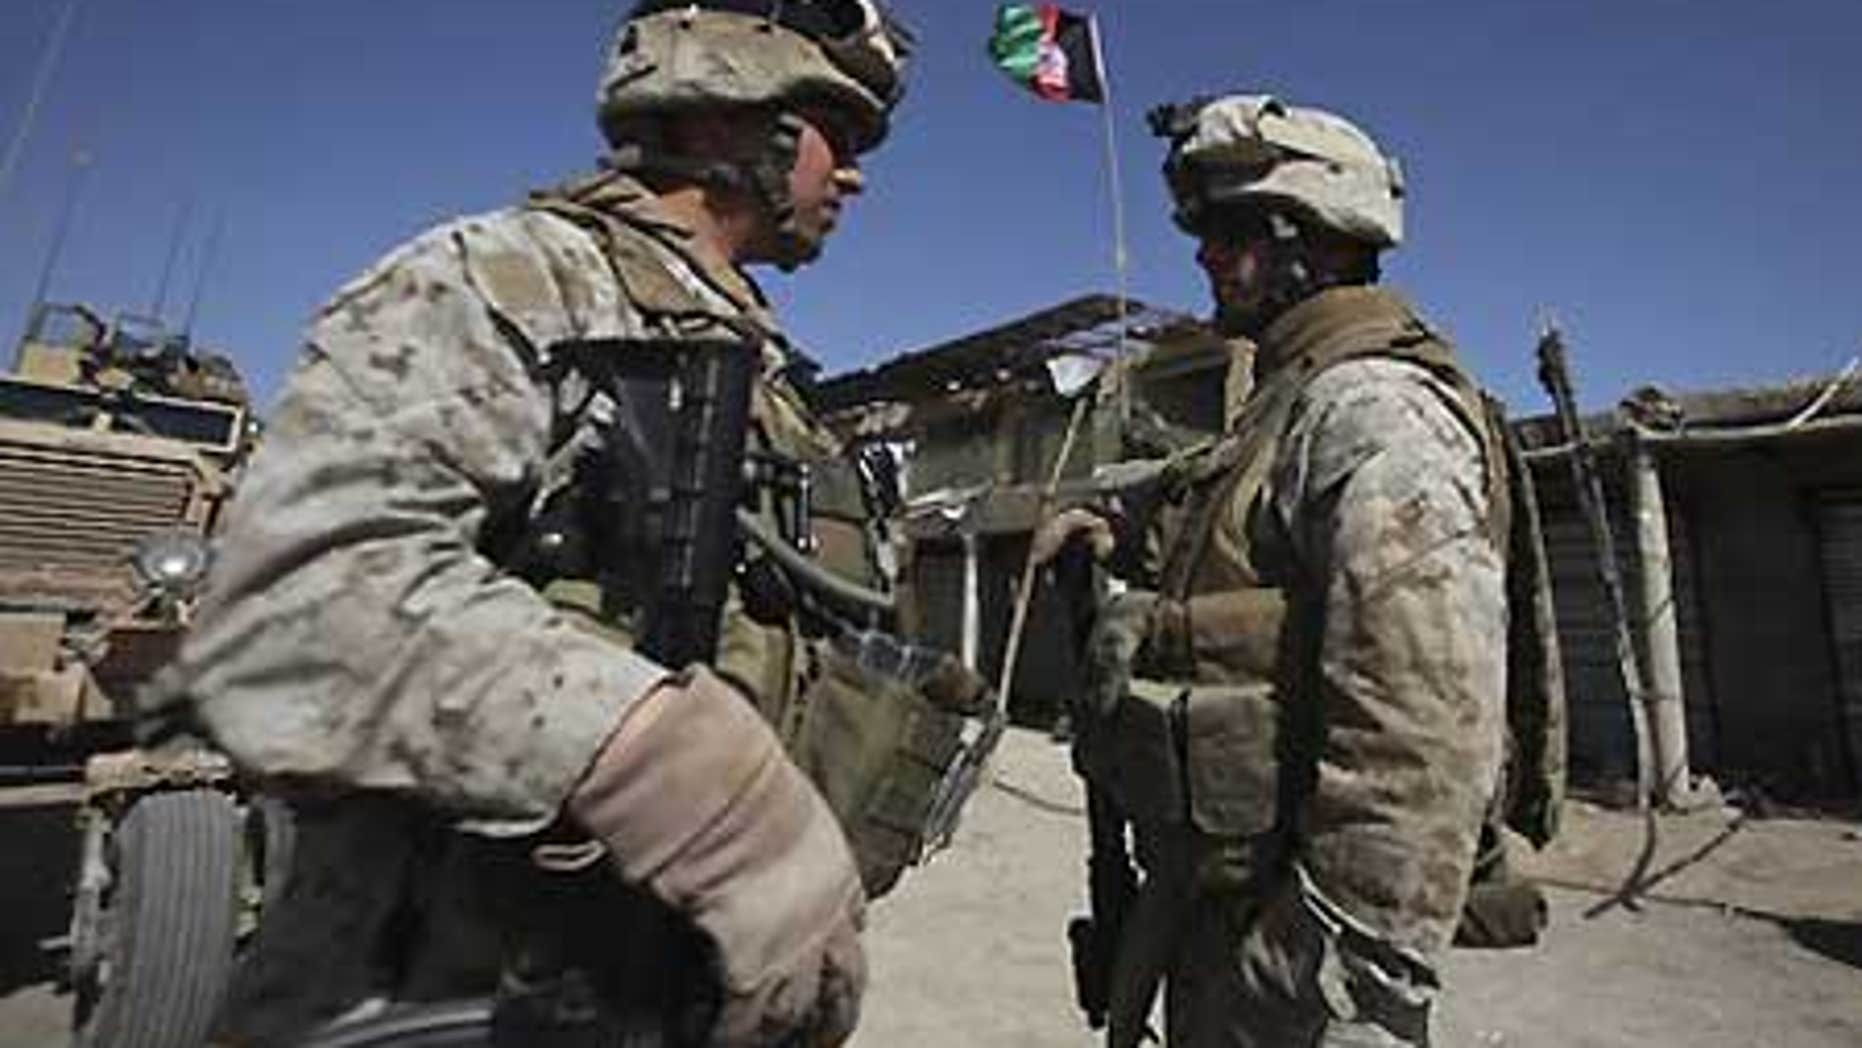 Feb. 17: U.S. Marines with NATO forces talk as newly raised Afghan flag is seen in the background at a deserted market of Marjah, Afghanistan.